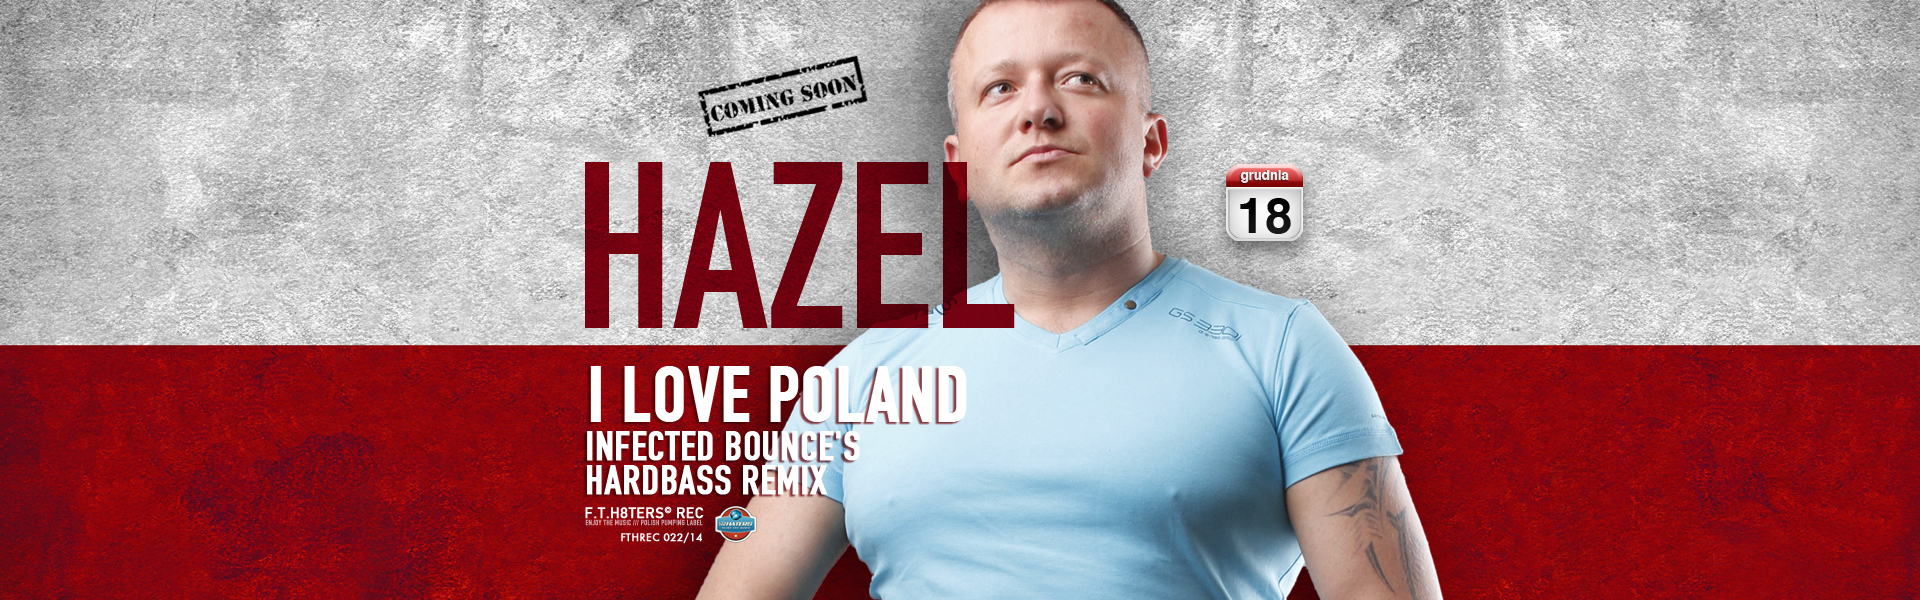 http://www.rtiaevents.pl/wp-content/uploads/2014/11/Hazel-COVER-i-love-poland.jpg